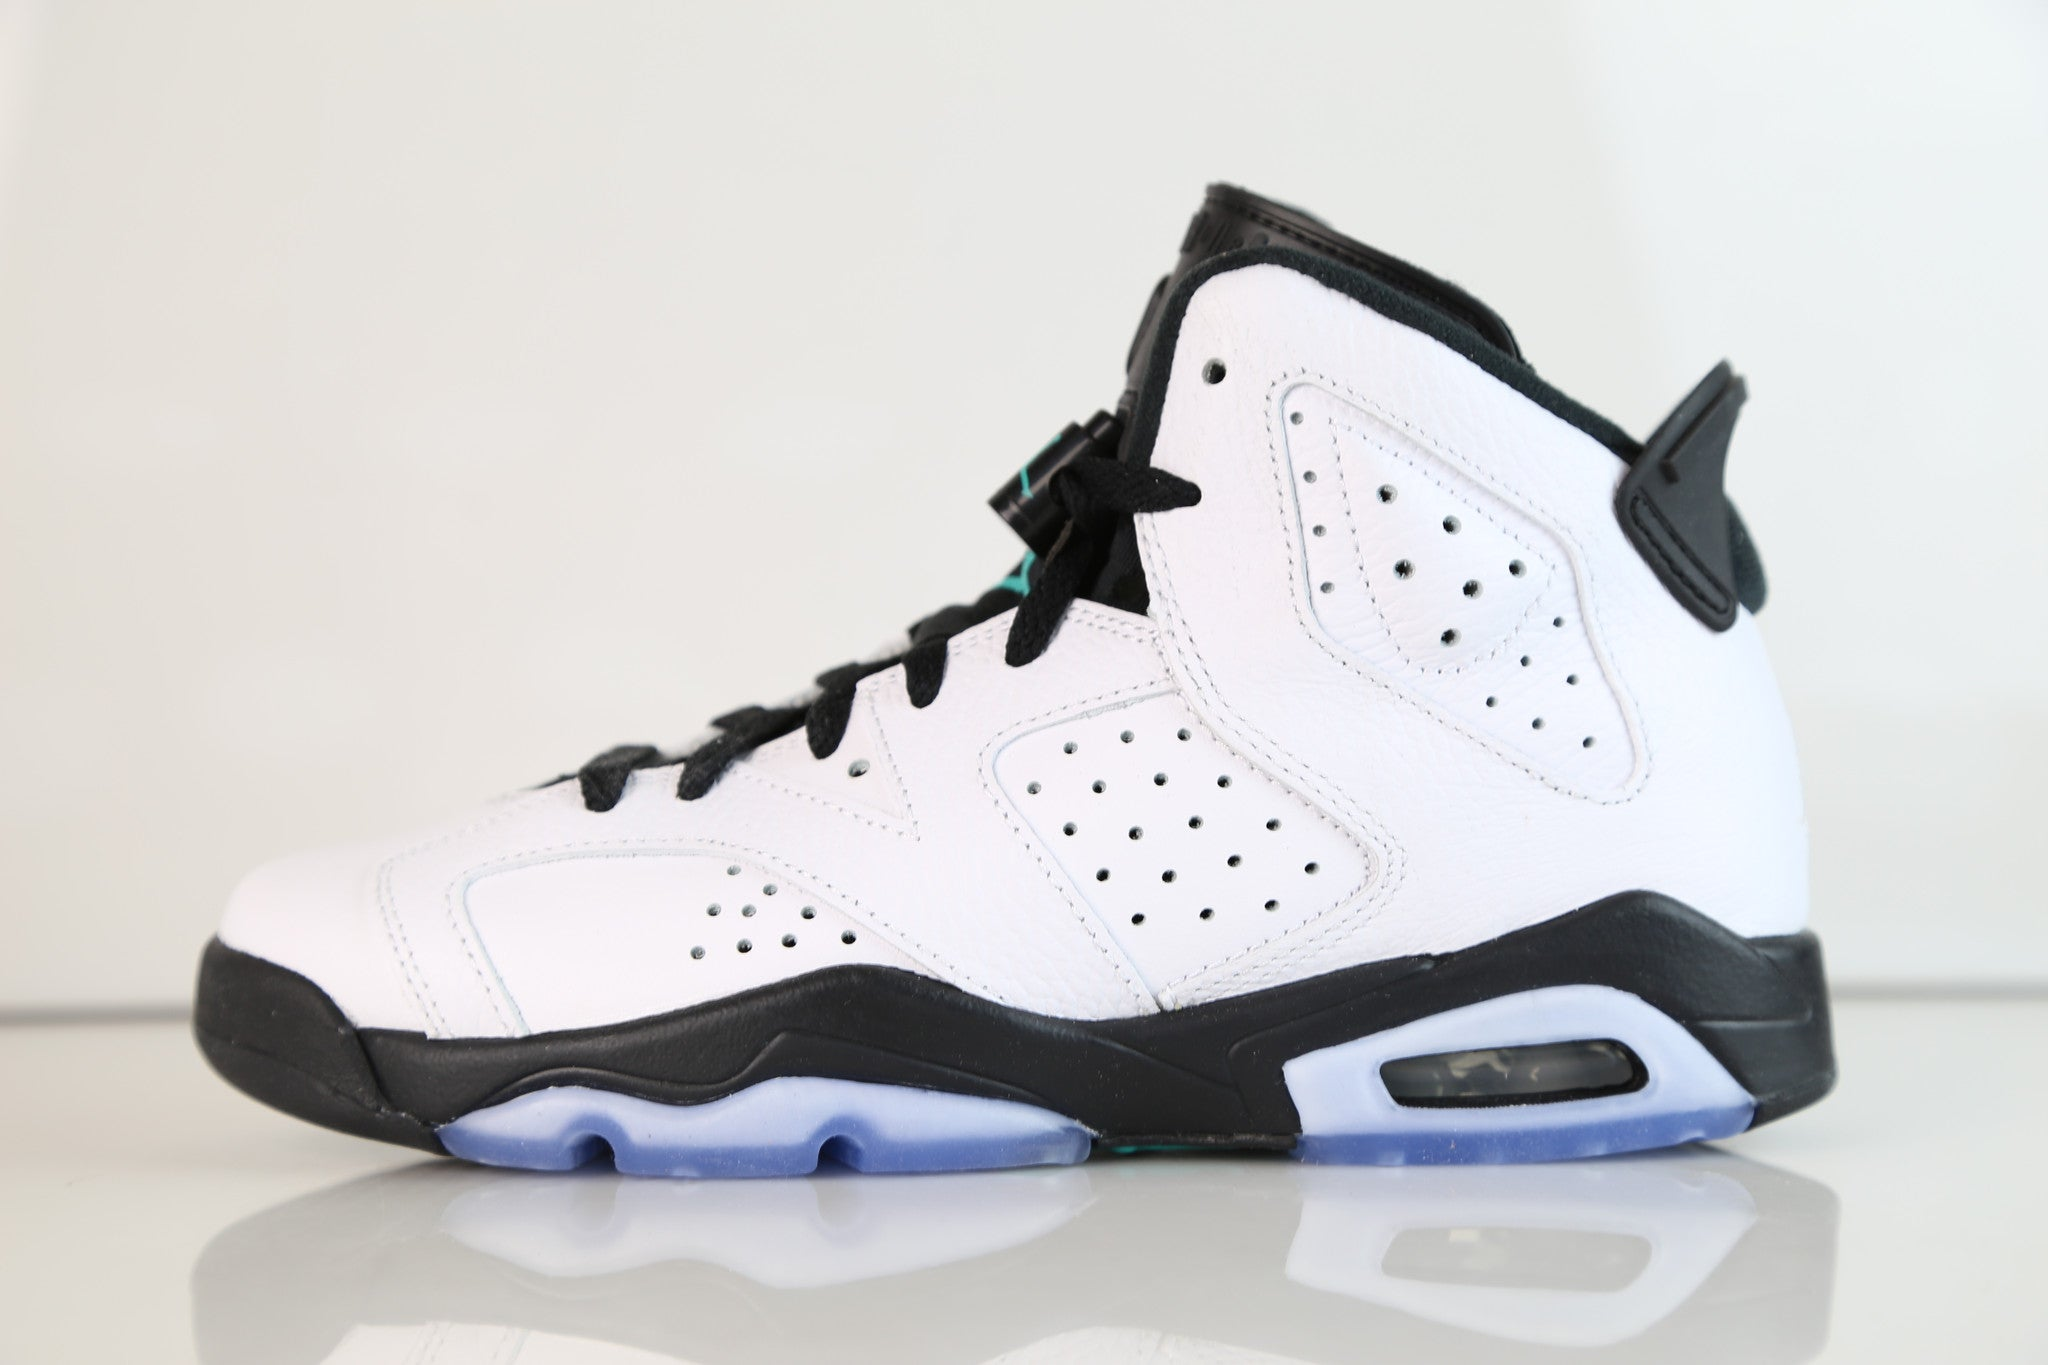 9ccb73d9d21f Nike Air Jordan Retro 6 White Hyper Jade Black BG GS 384665-122 2017 ...